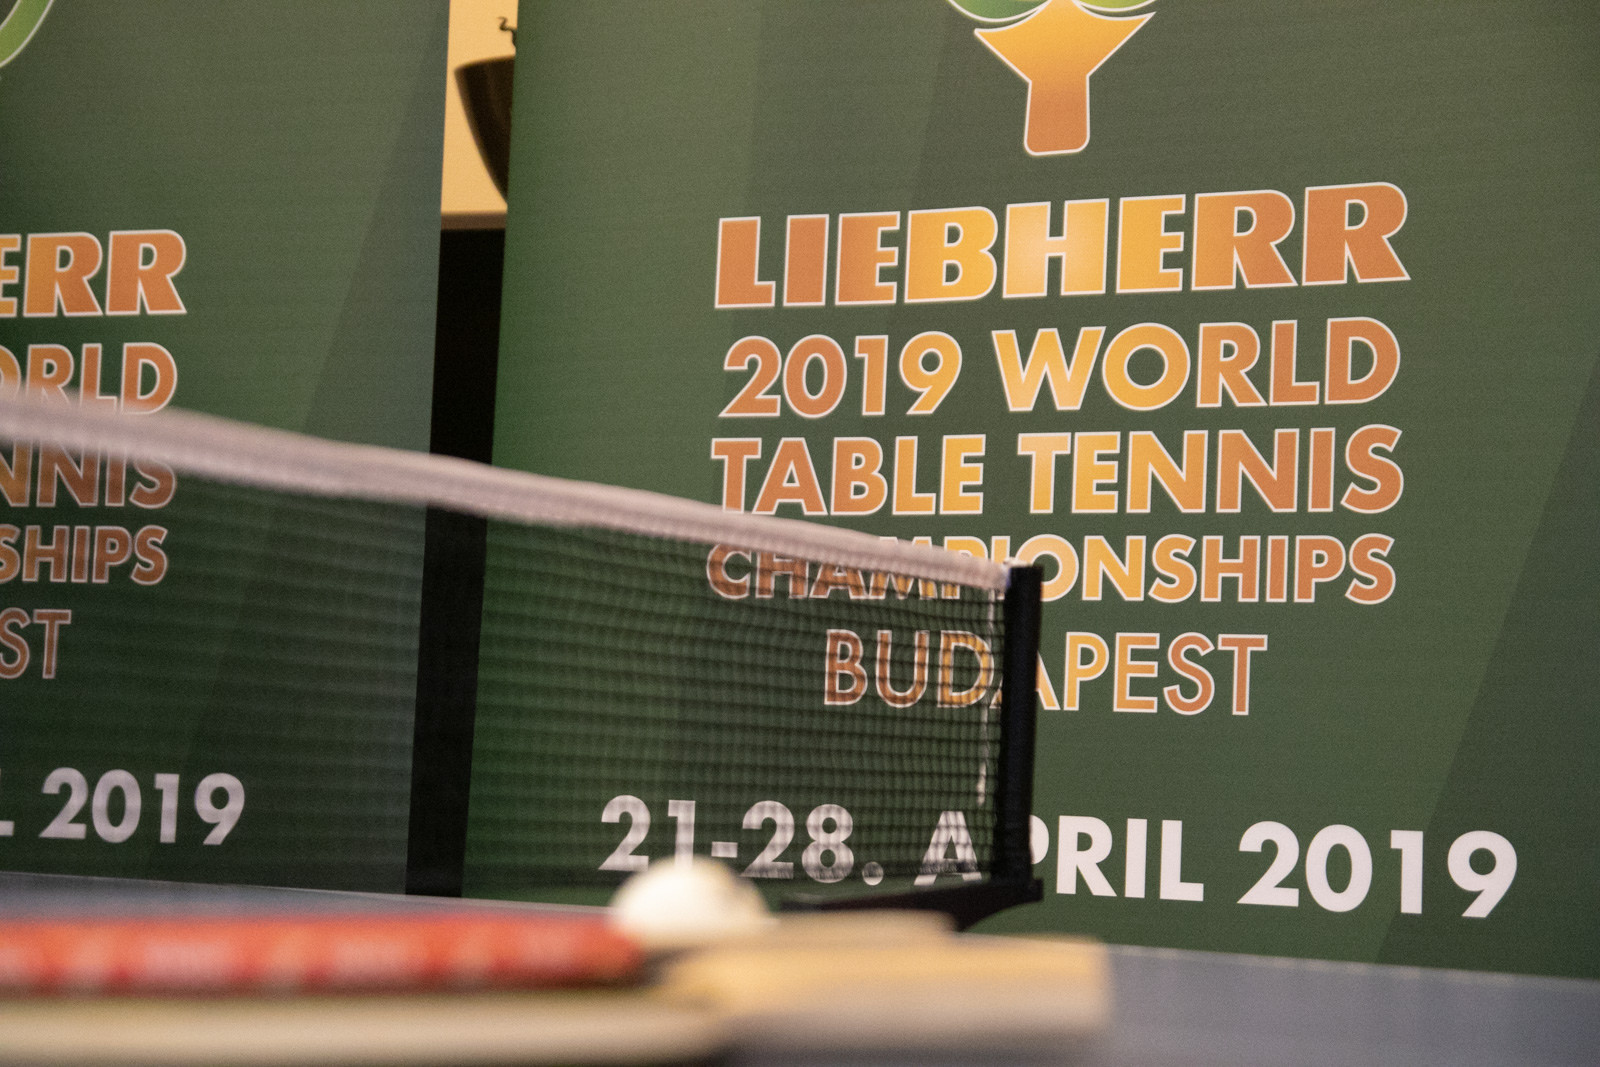 The ITTF World Championships starting in Budapest today will see the Chinese favourites in men's and women's competition facing unusually strong challenges ©ITTF